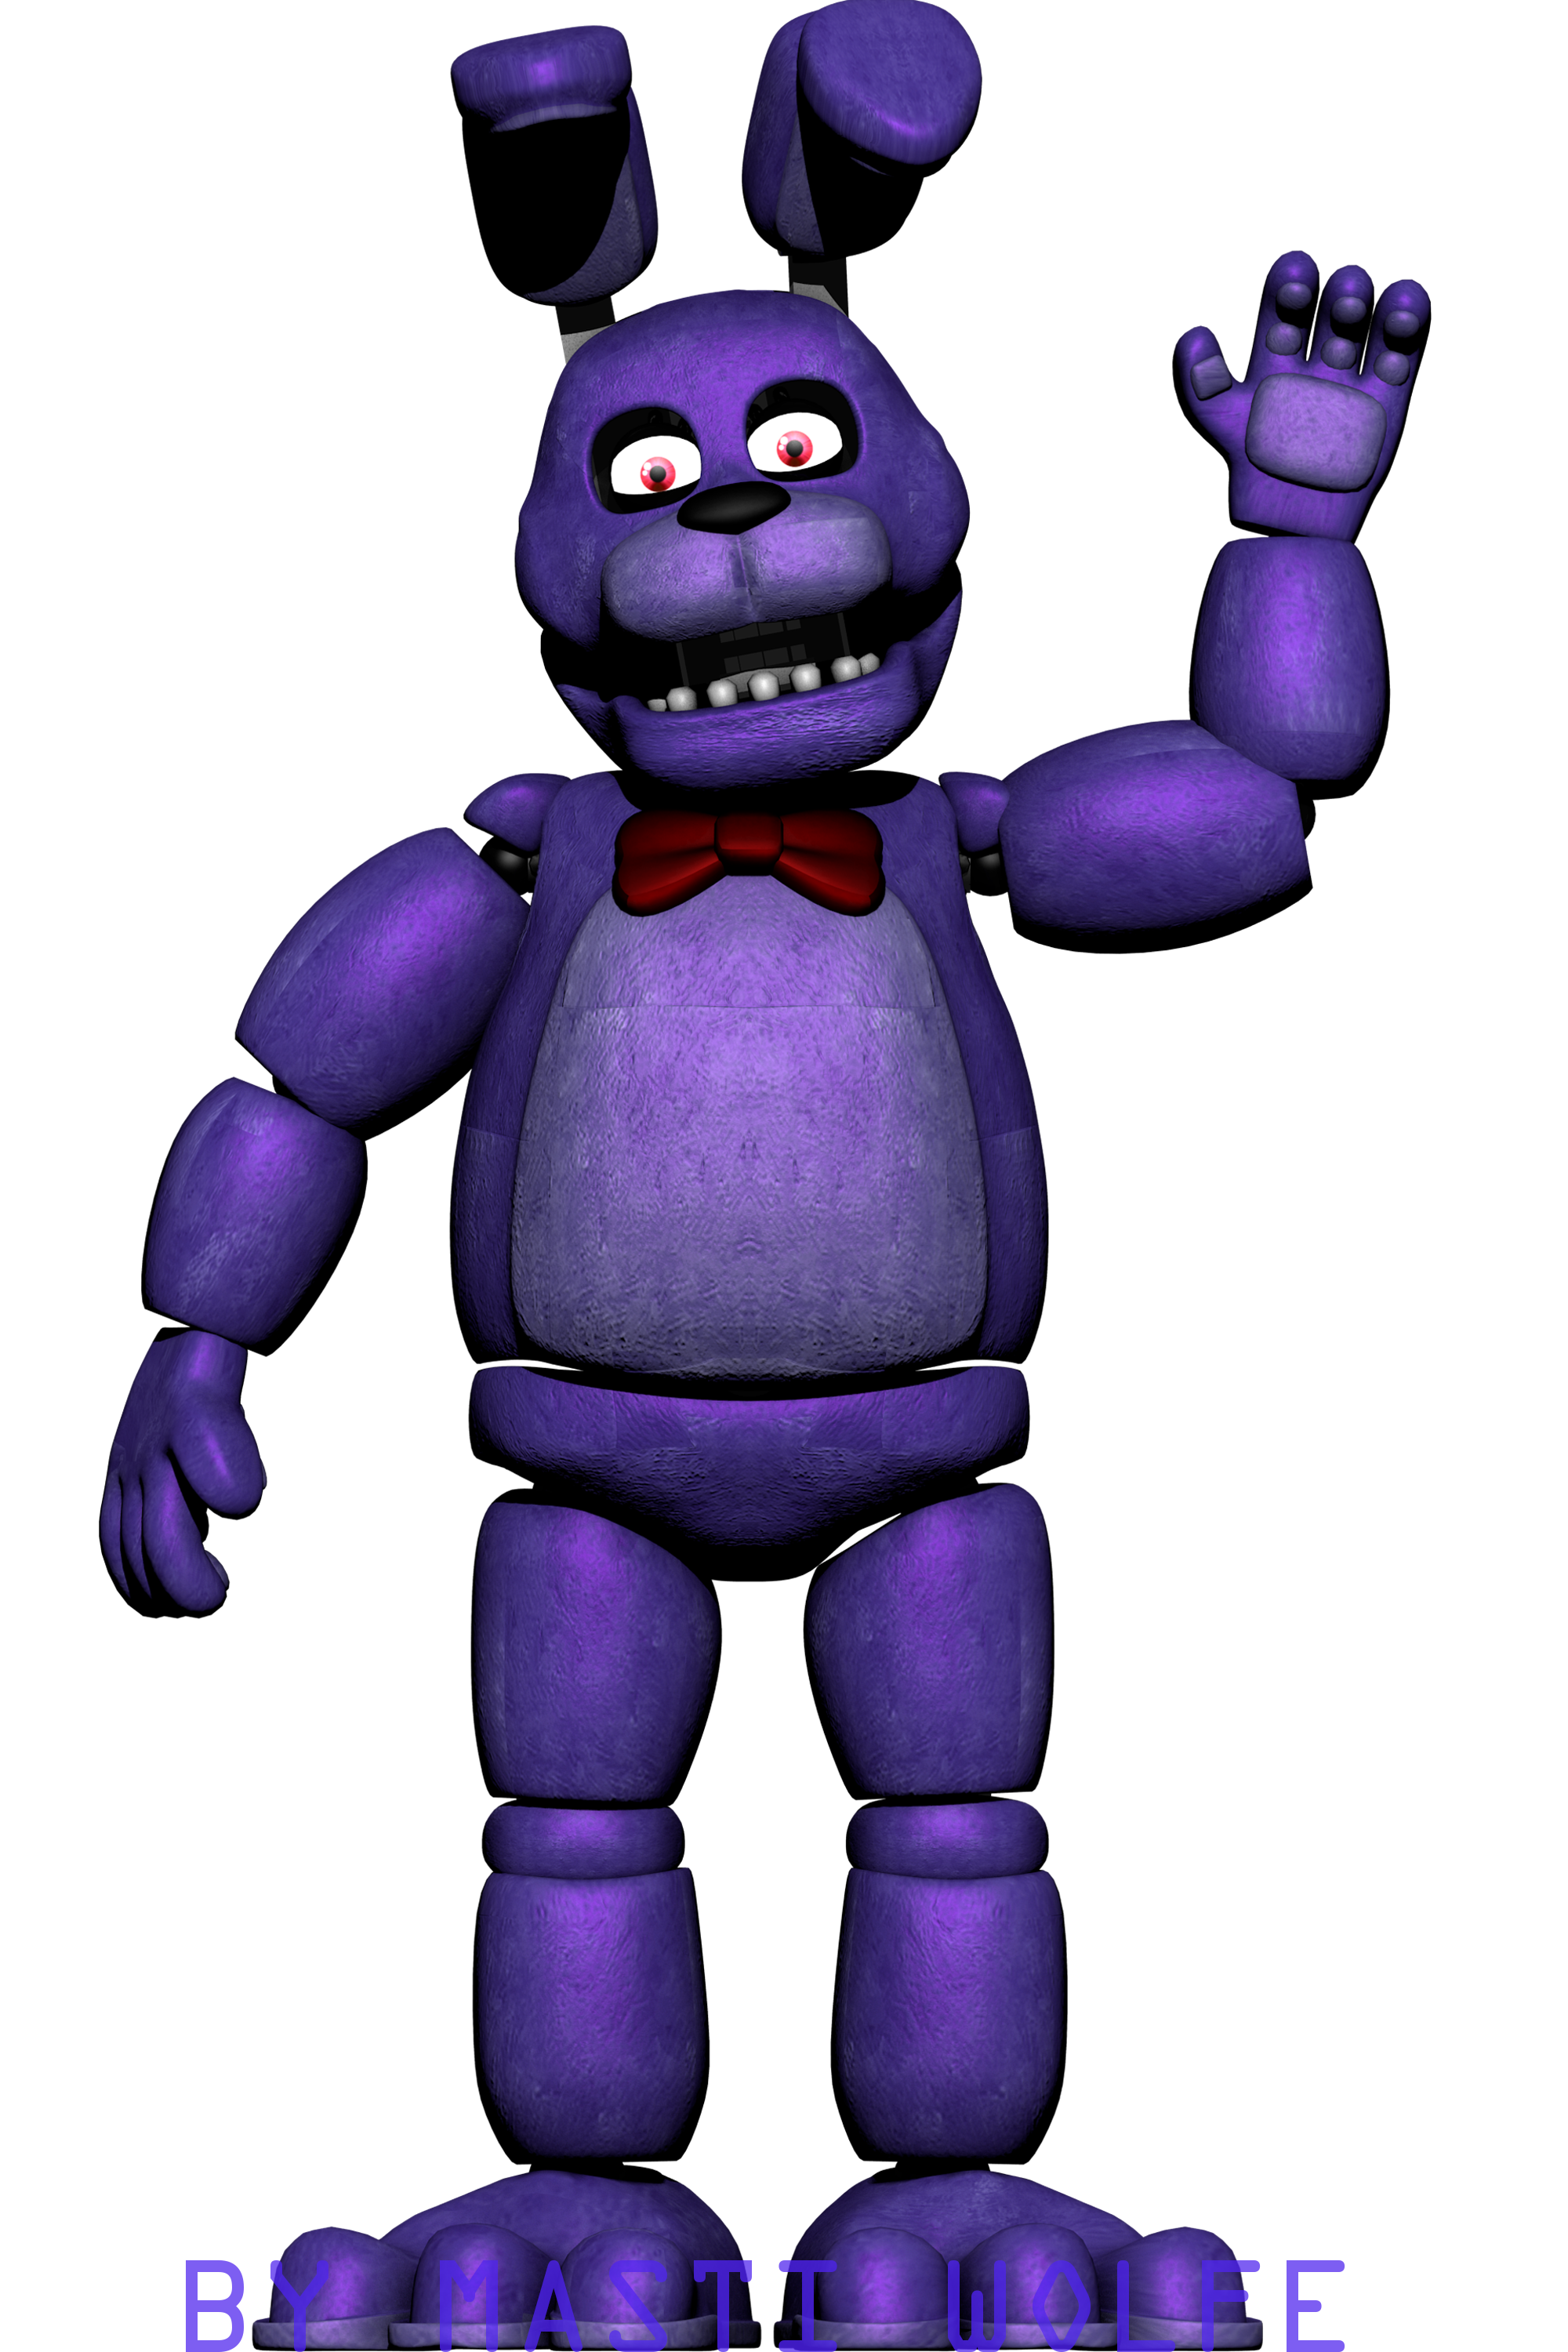 Transparent fnaf bonnie. Character profiles wattpad chica